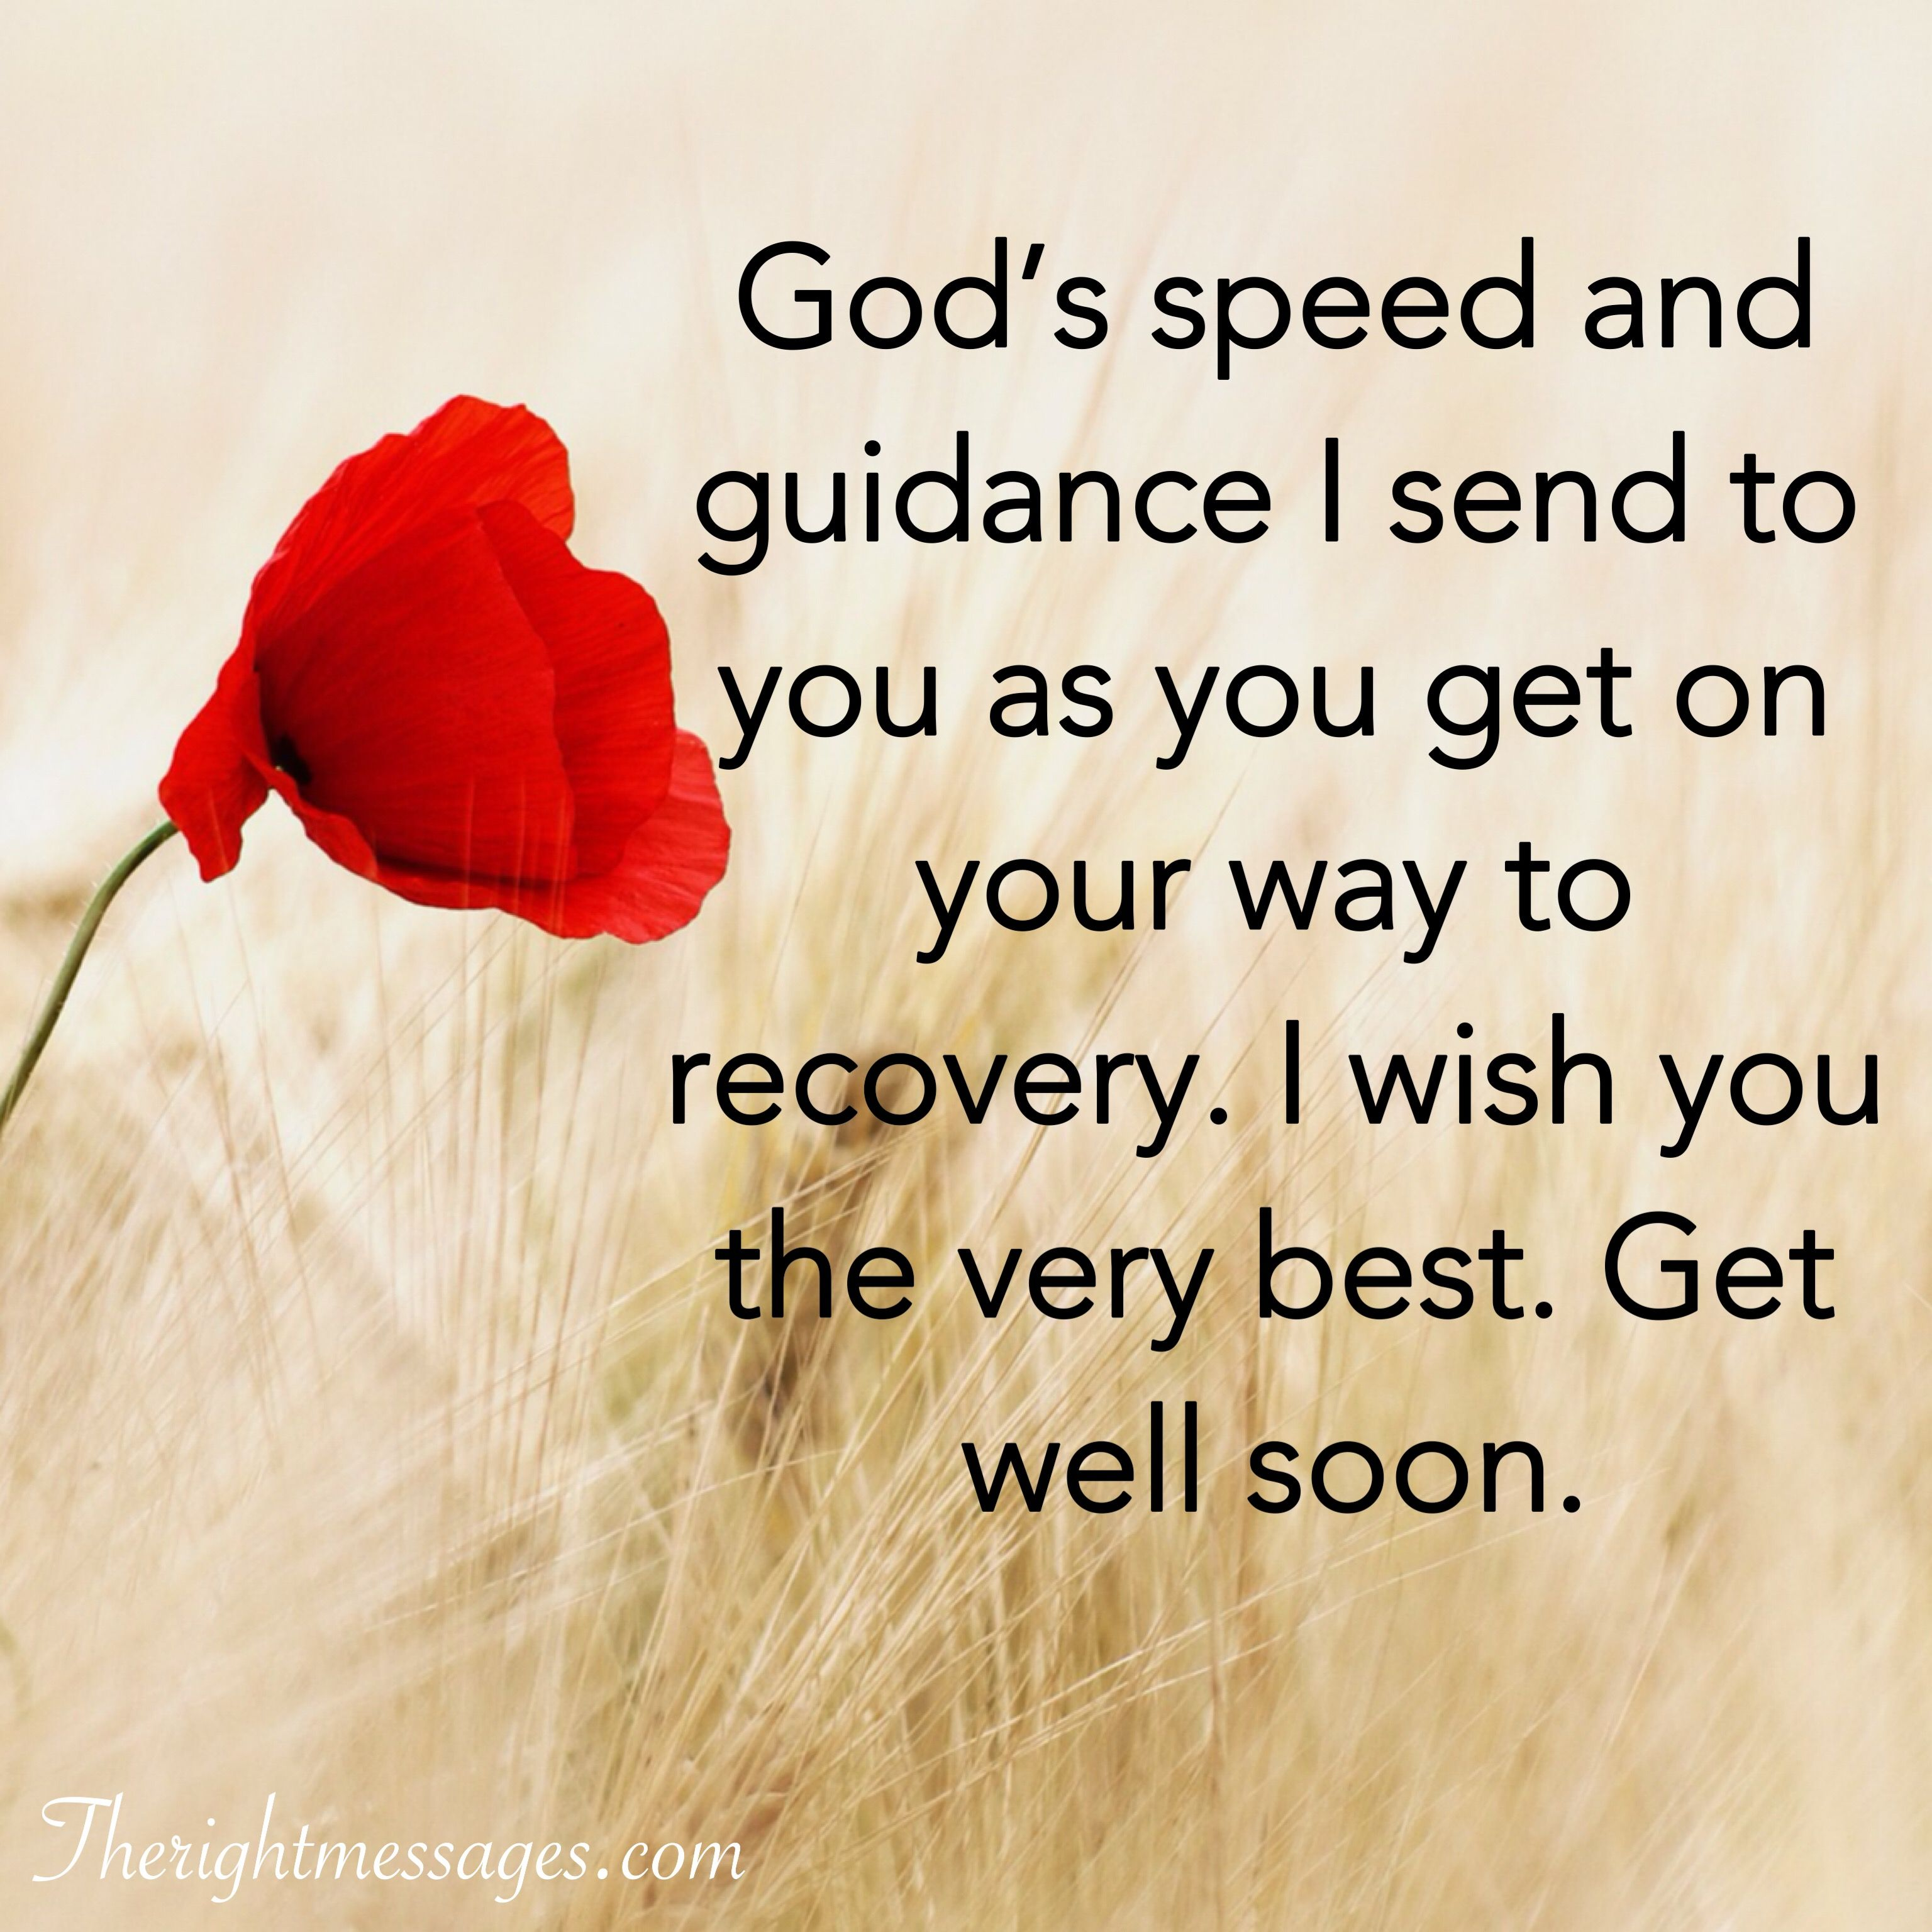 Get Well Quotes Wishes For Speedy Recovery Get Well Quotes